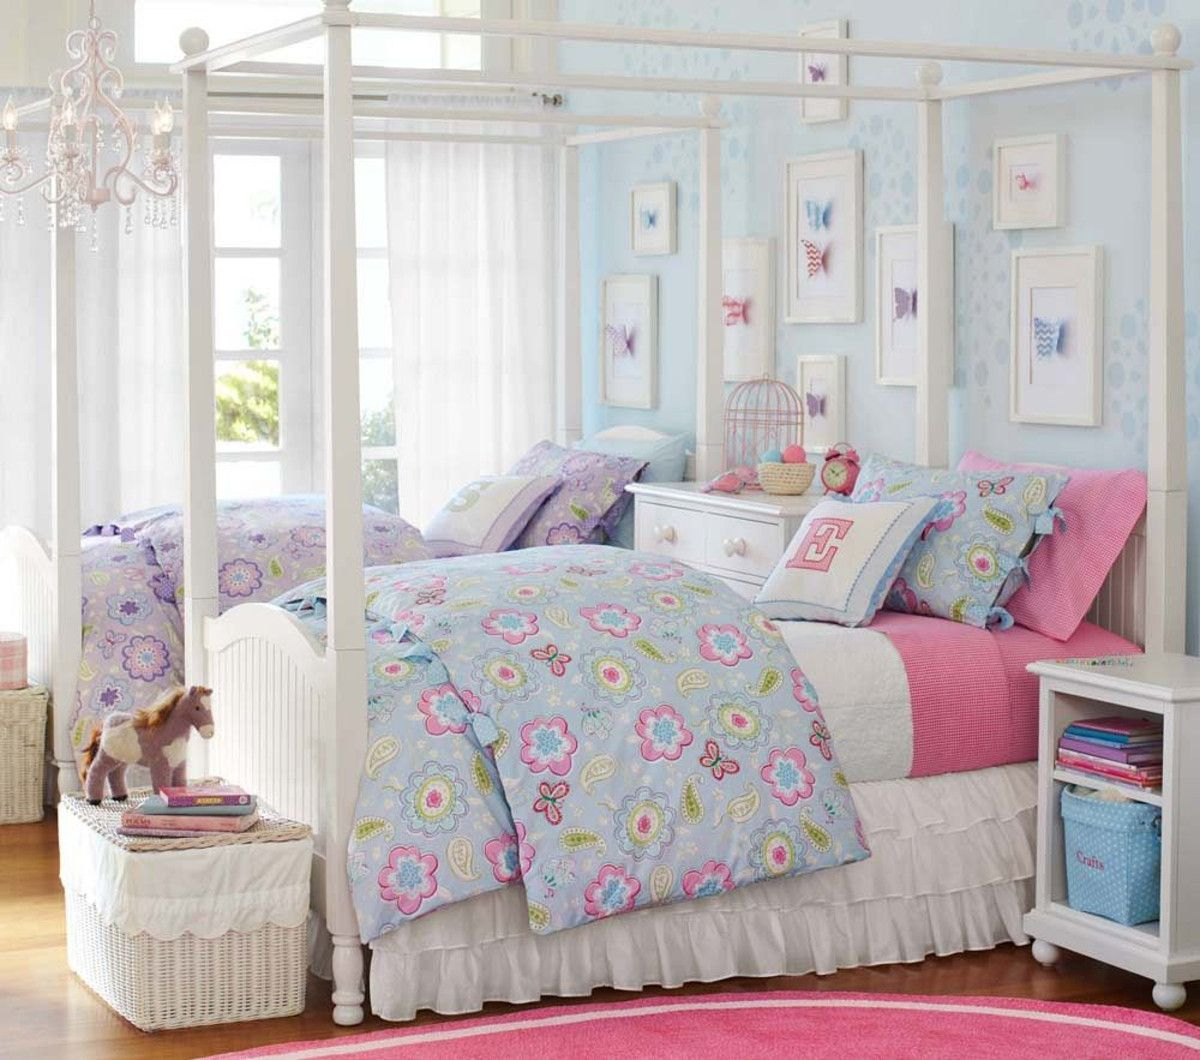 Catalina Canopy Bed Pottery Barn Kids Australia Girls